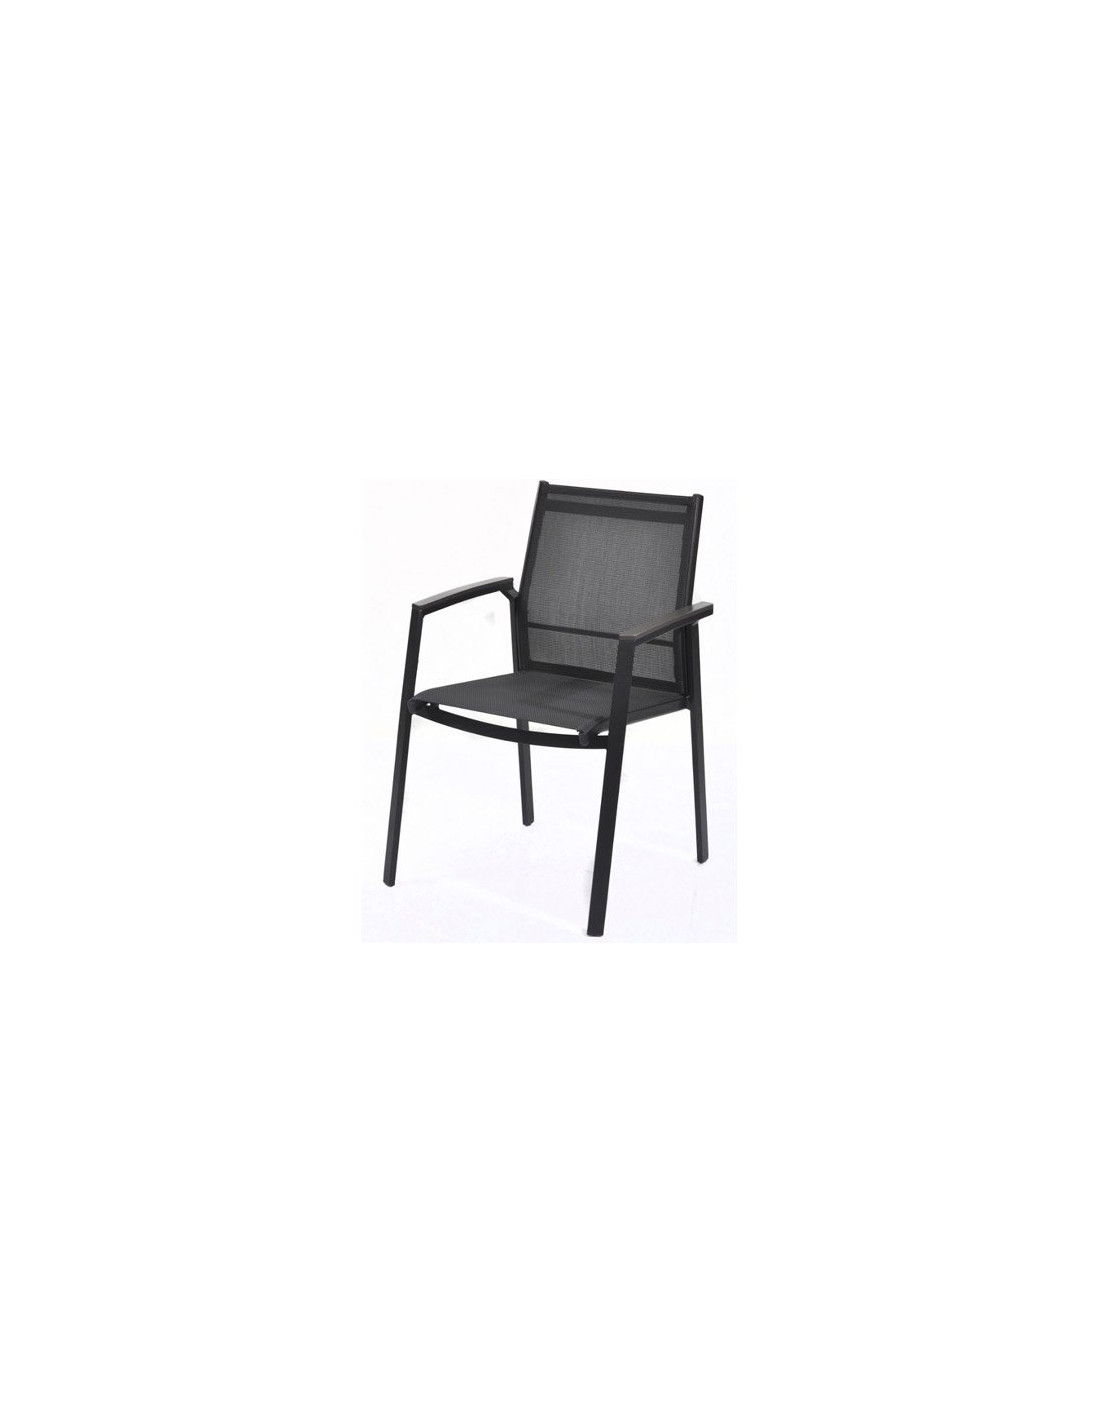 fauteuil de jardin aluminium et textil ne mod le lille kettler. Black Bedroom Furniture Sets. Home Design Ideas